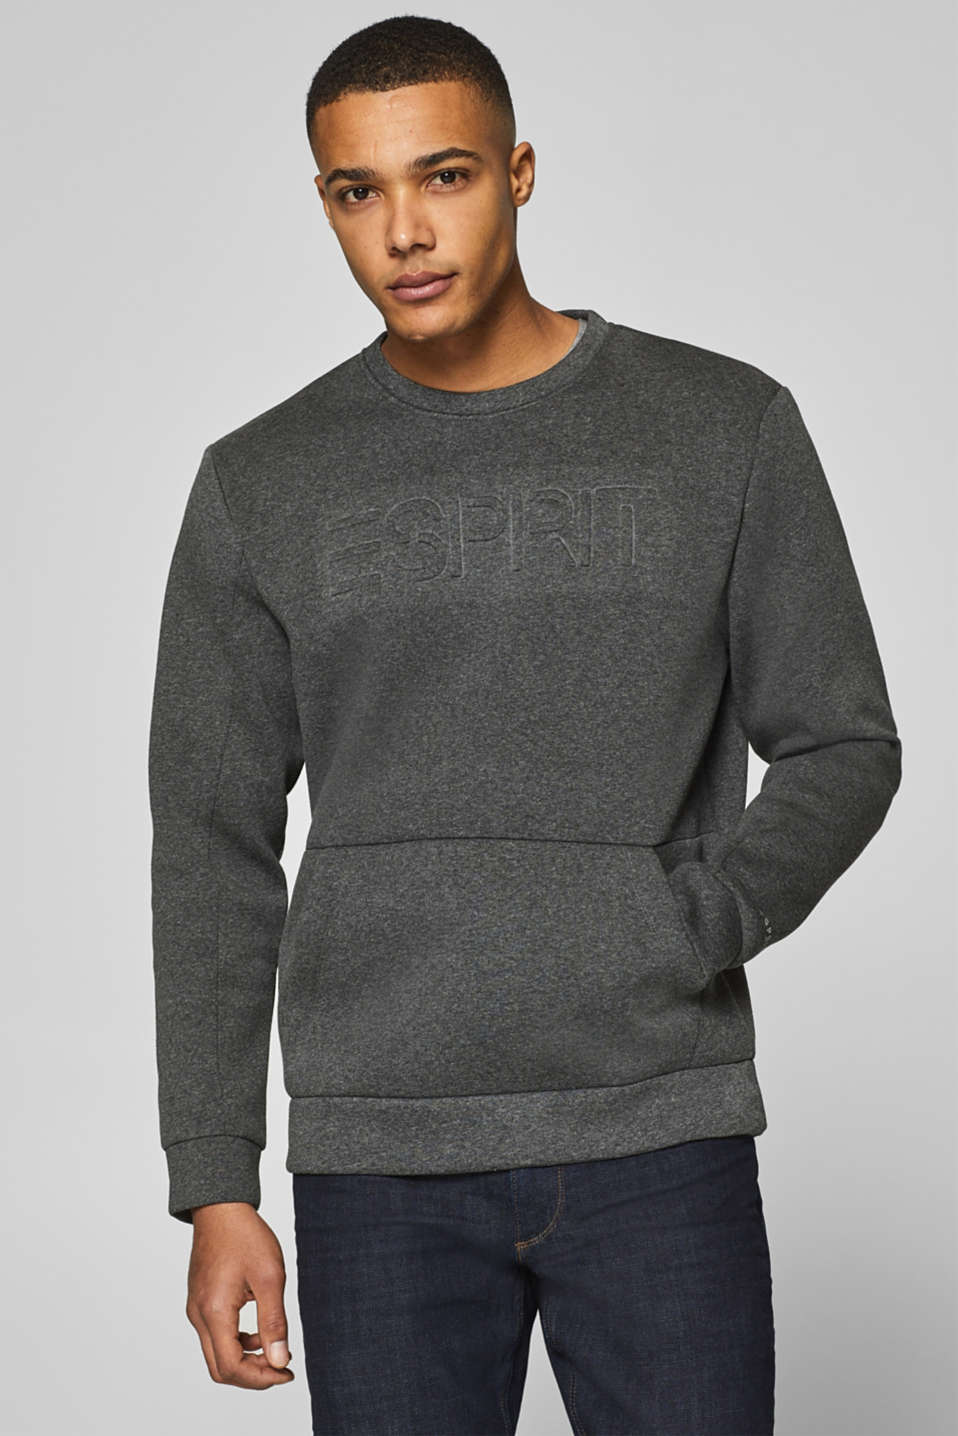 Esprit - KEEP COOL, STAY WARM: Sweatshirt mit 3D-Logo